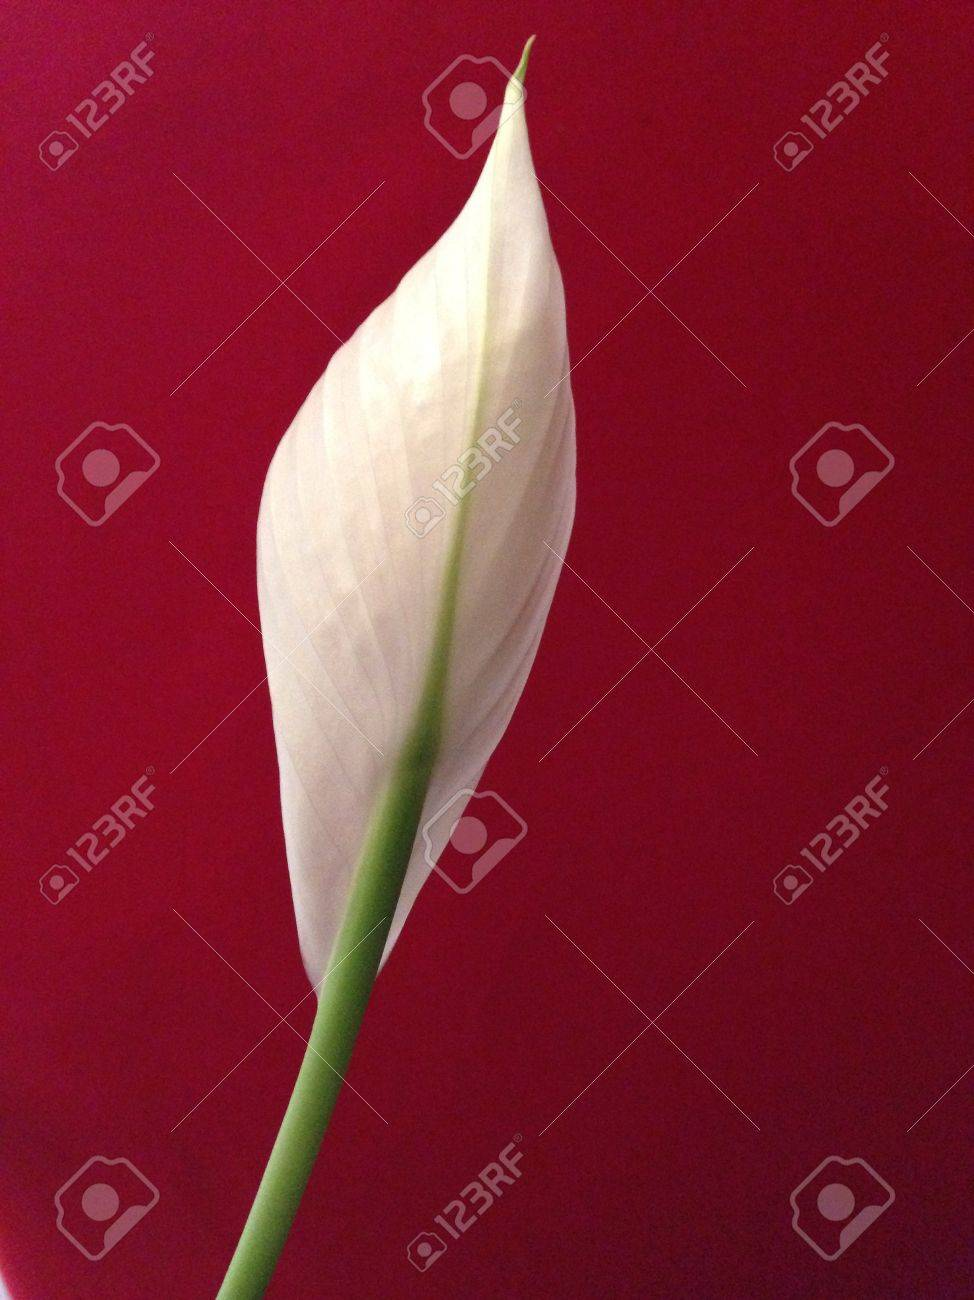 Peace lily against red background stock photo picture and royalty peace lily against red background stock photo 24182687 izmirmasajfo